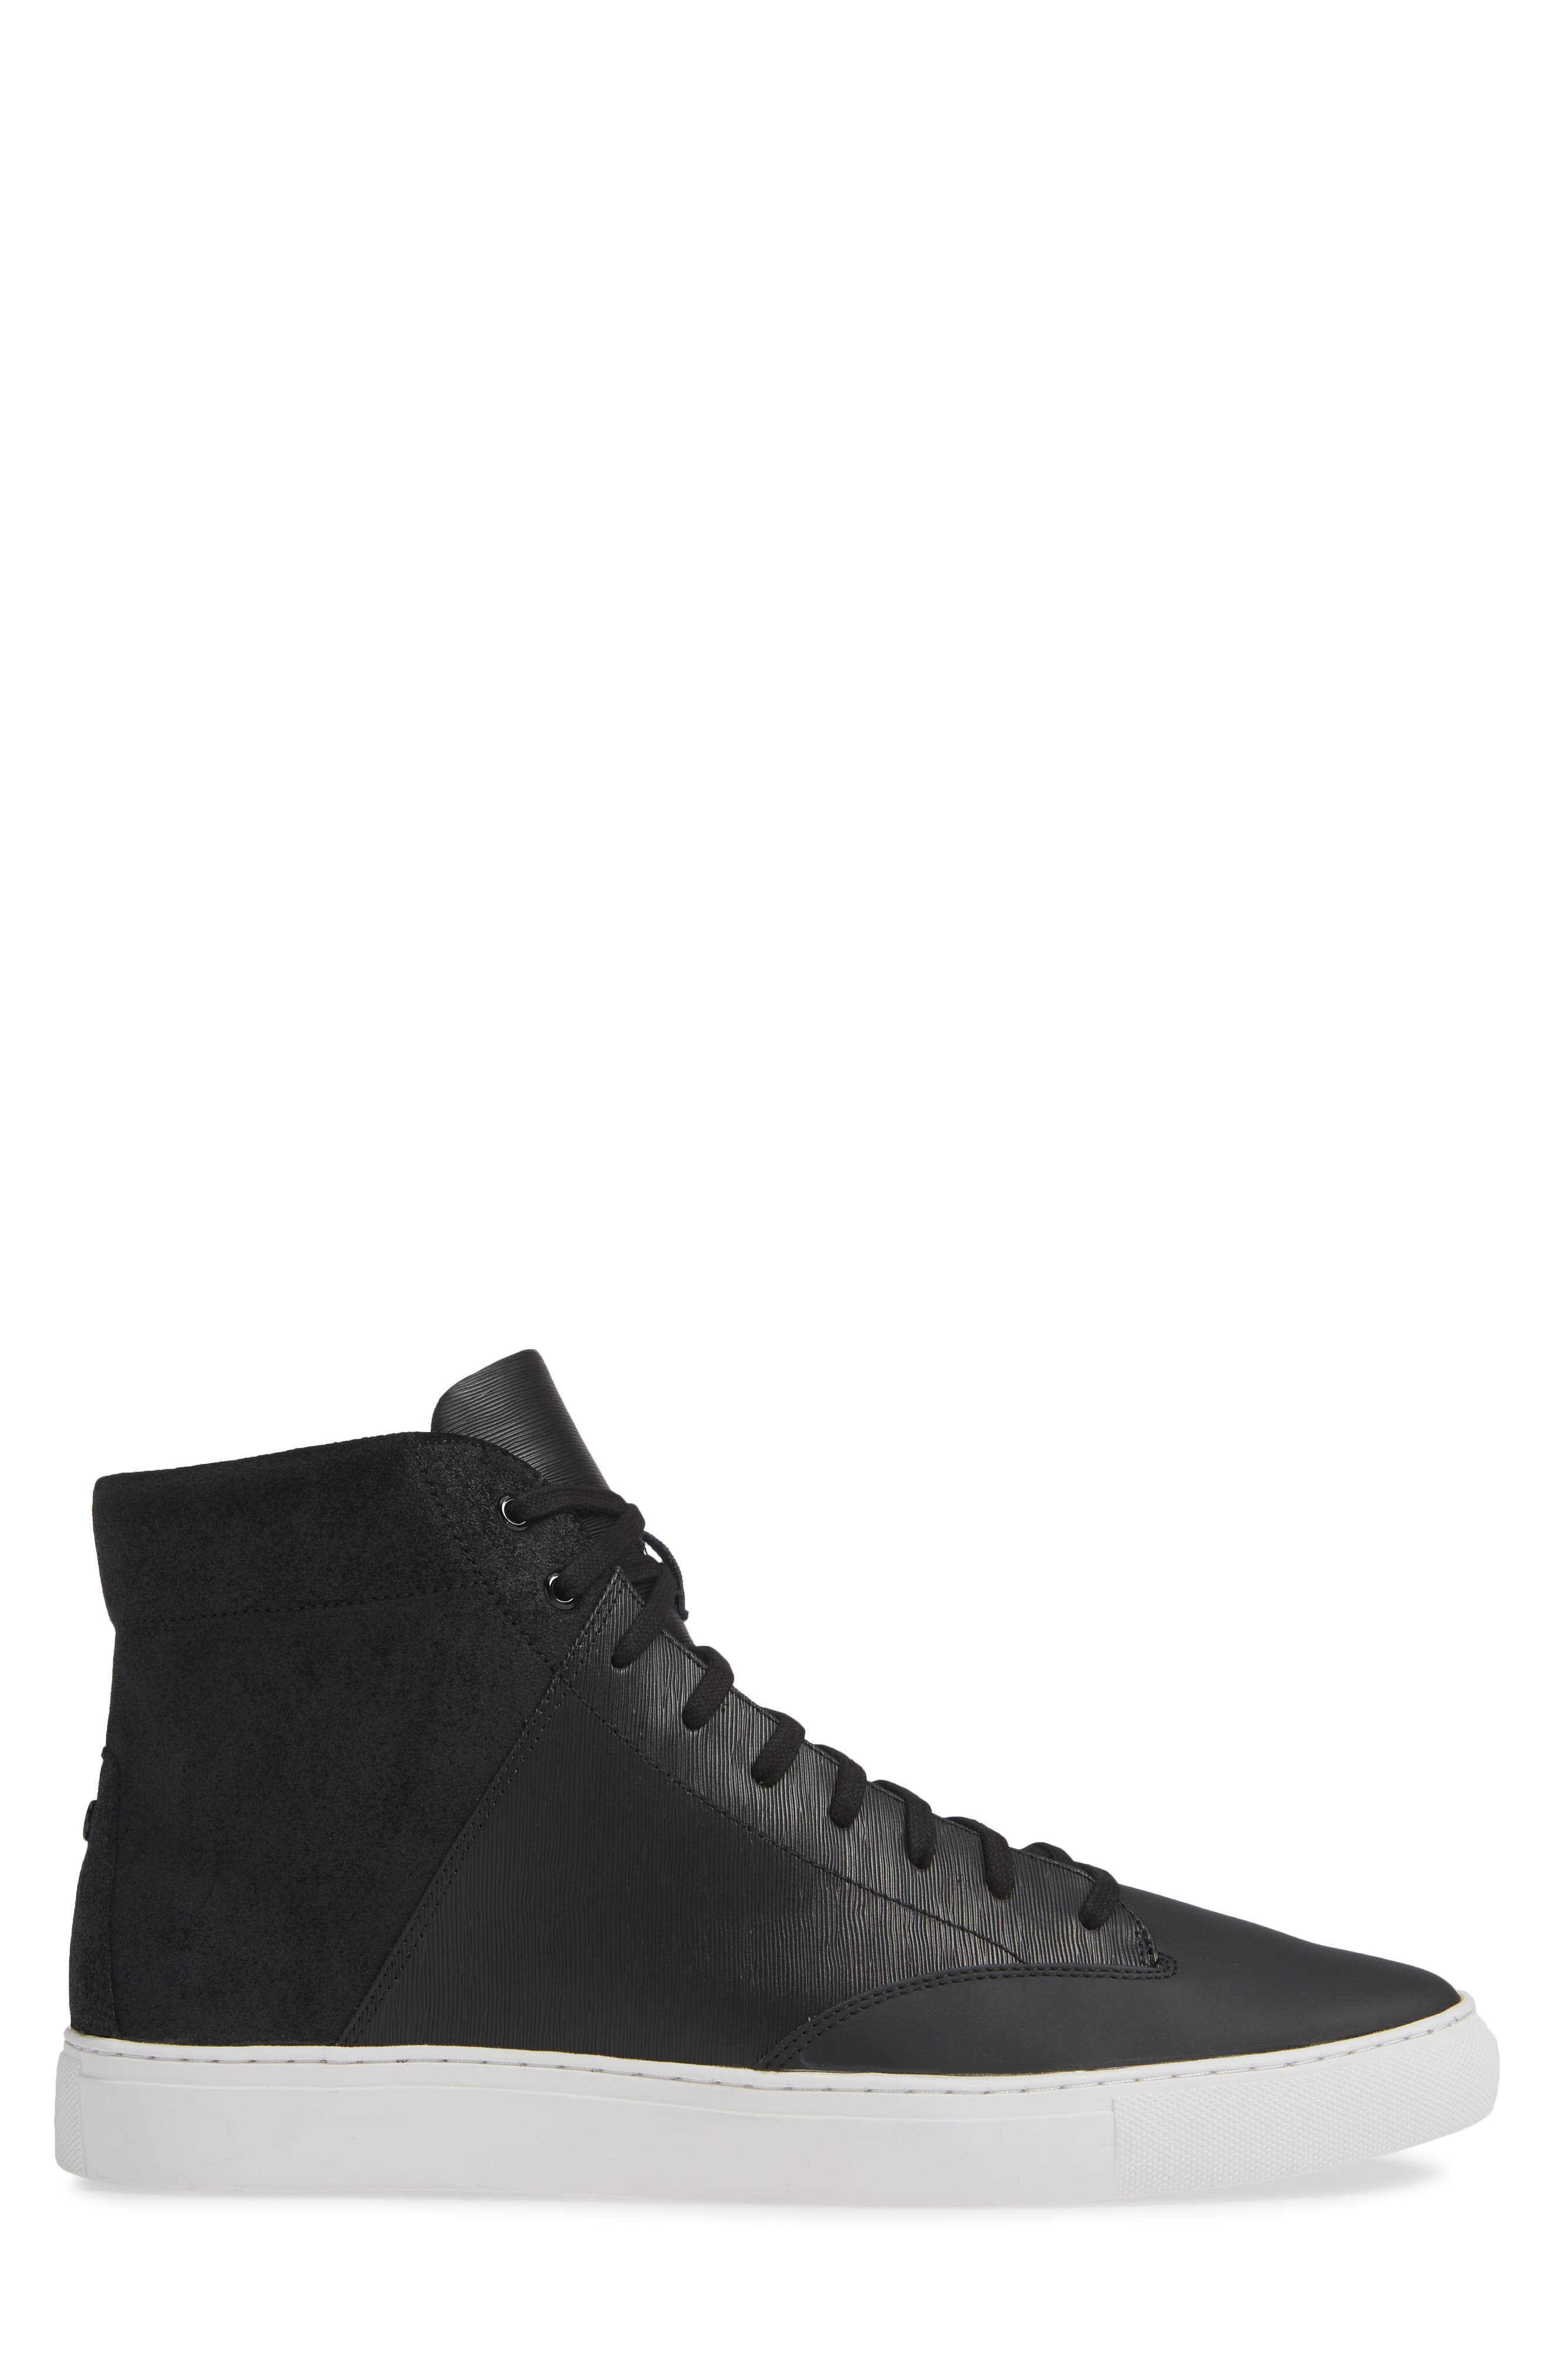 'Porter' High Top Sneaker,                             Alternate thumbnail 3, color,                             BLACK SUEDE/ LEATHER